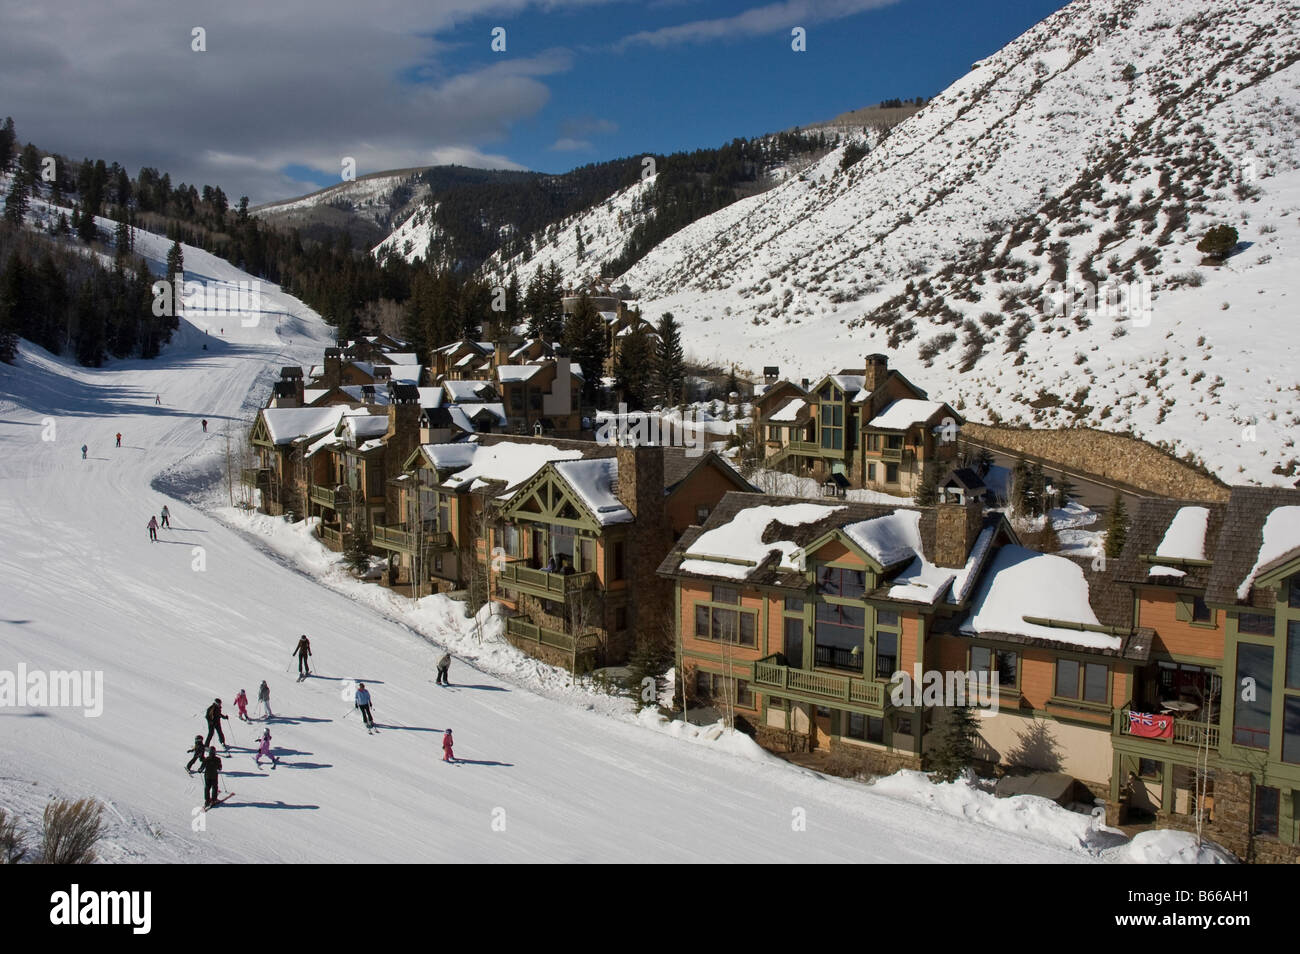 arrowhead base area condos as seen from the lift beaver creek stock photo alamy https www alamy com stock photo arrowhead base area condos as seen from the lift beaver creek resort 21038333 html